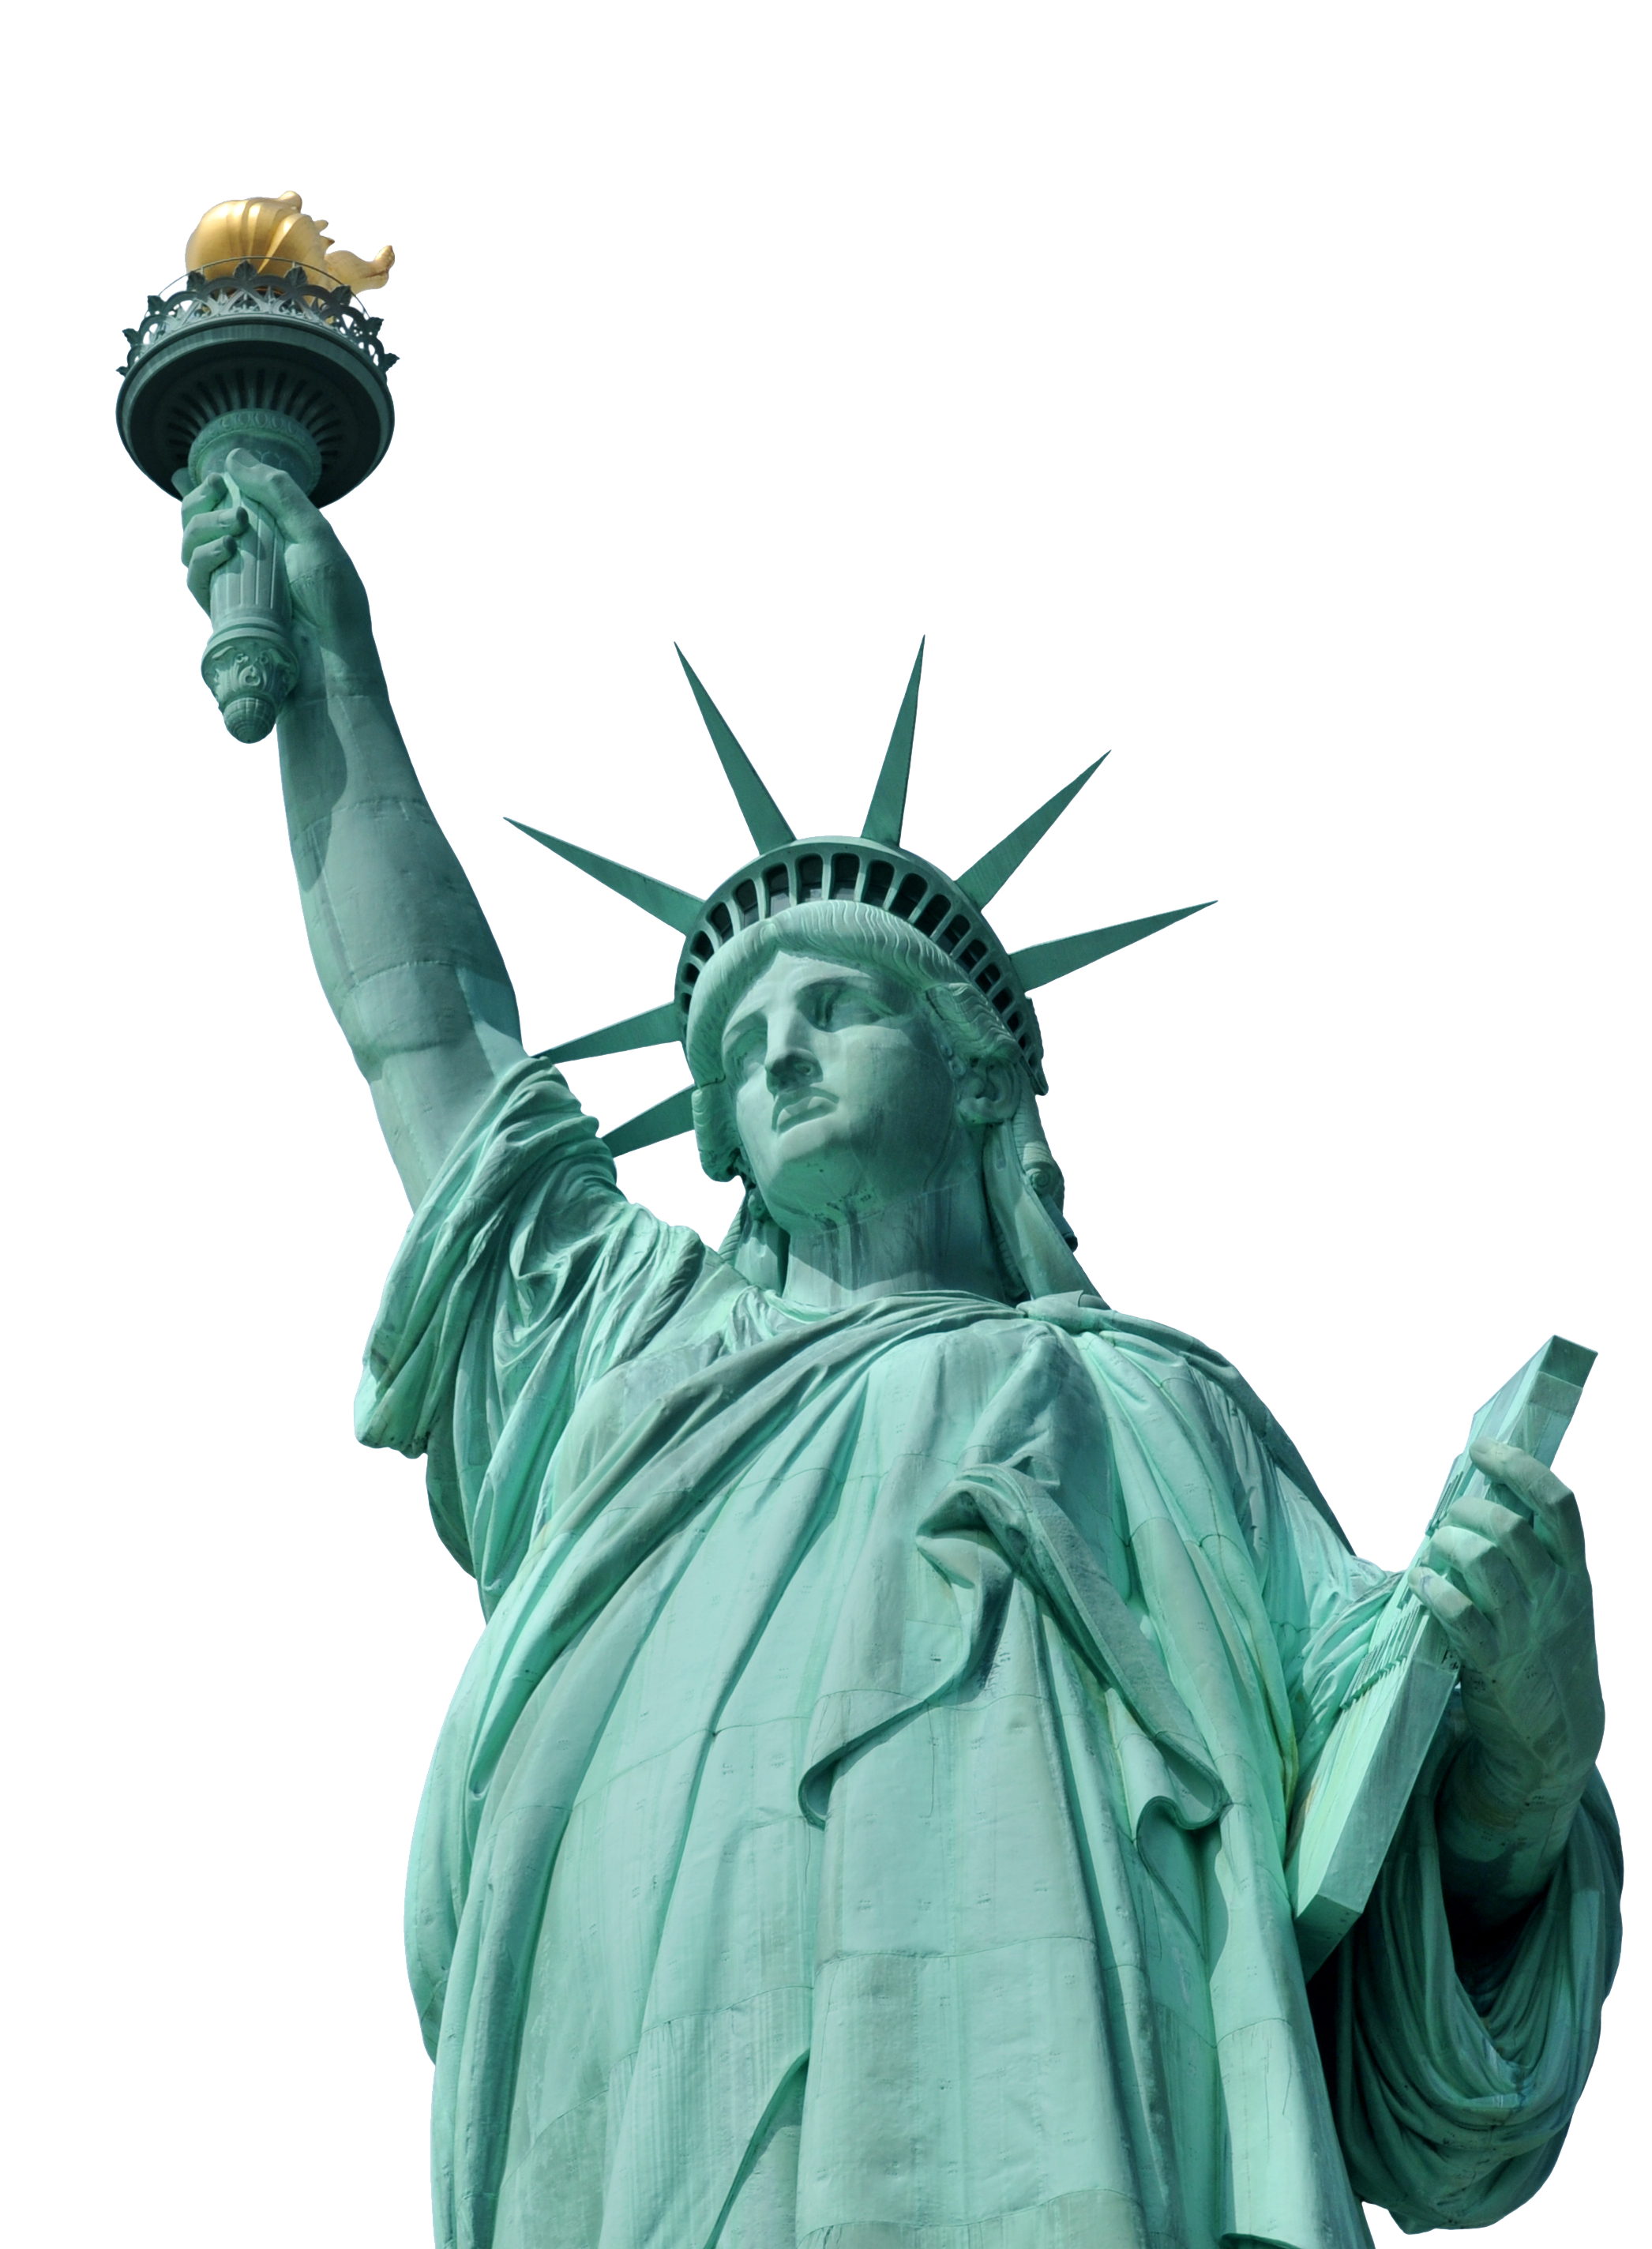 Statue Of Liberty Art Architecture Classical sculpture